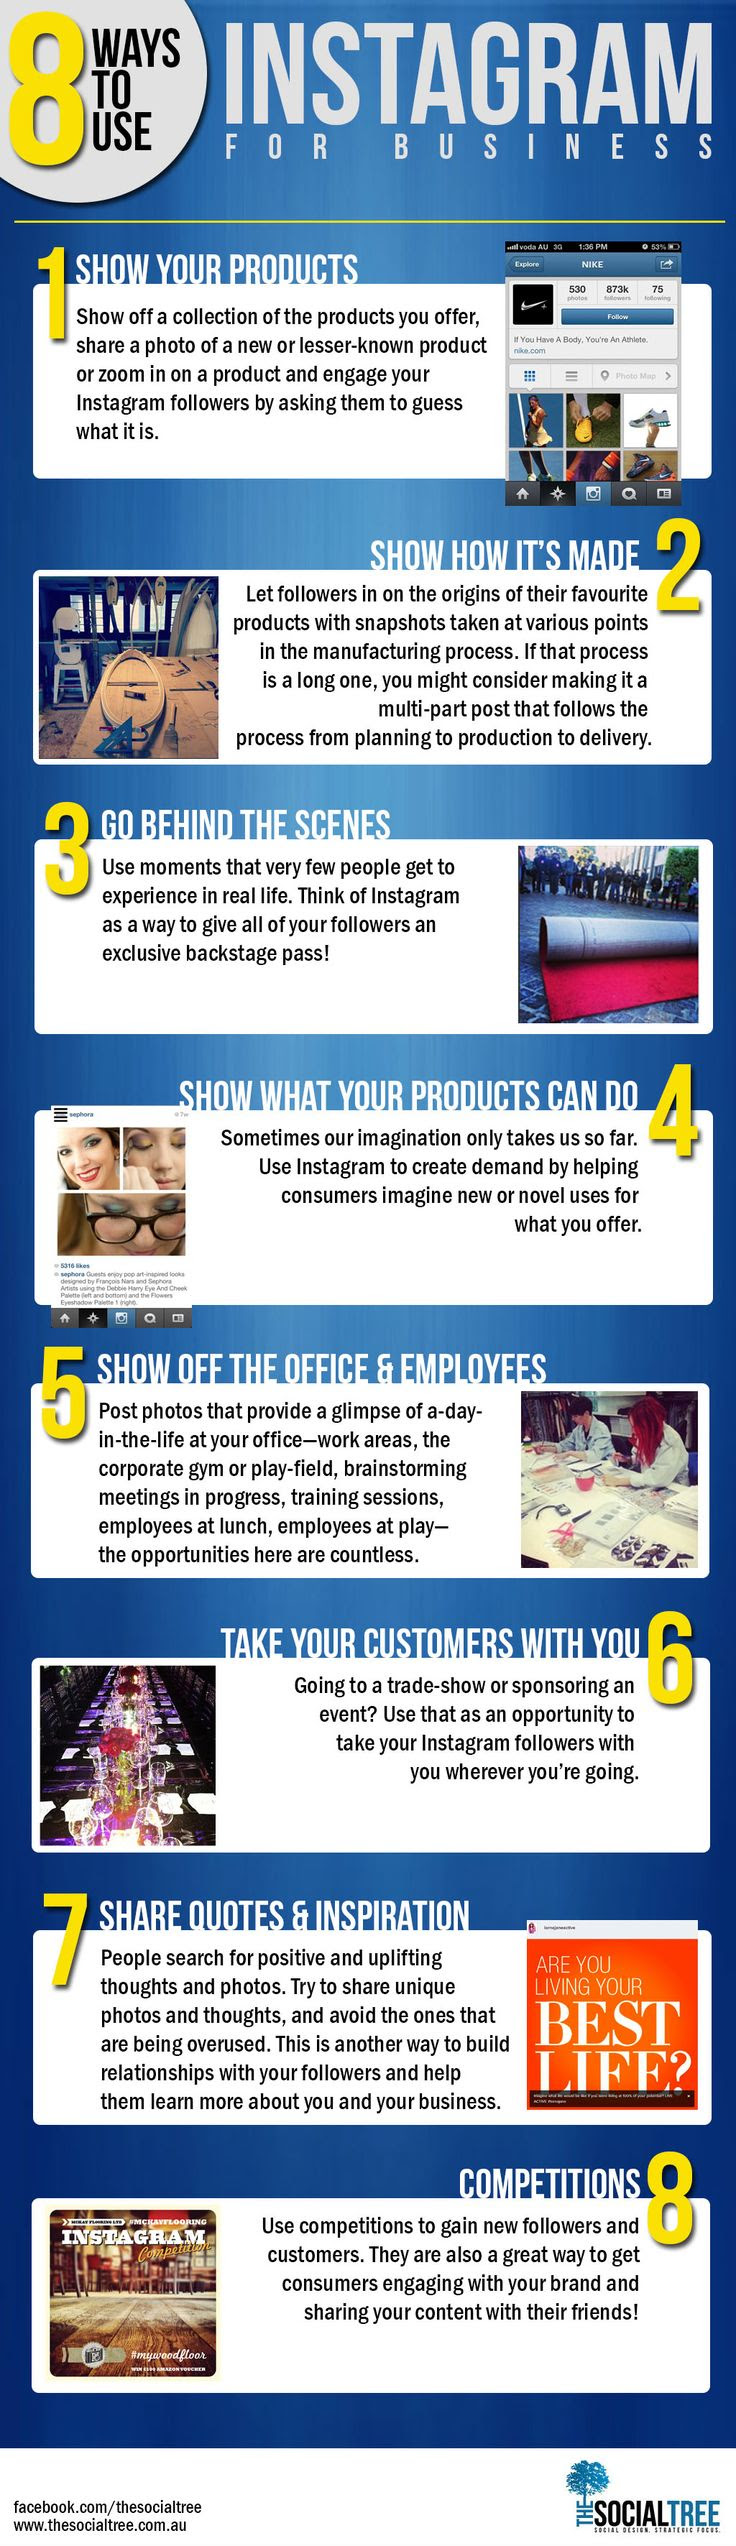 8 Ways to Use Instagram for Business